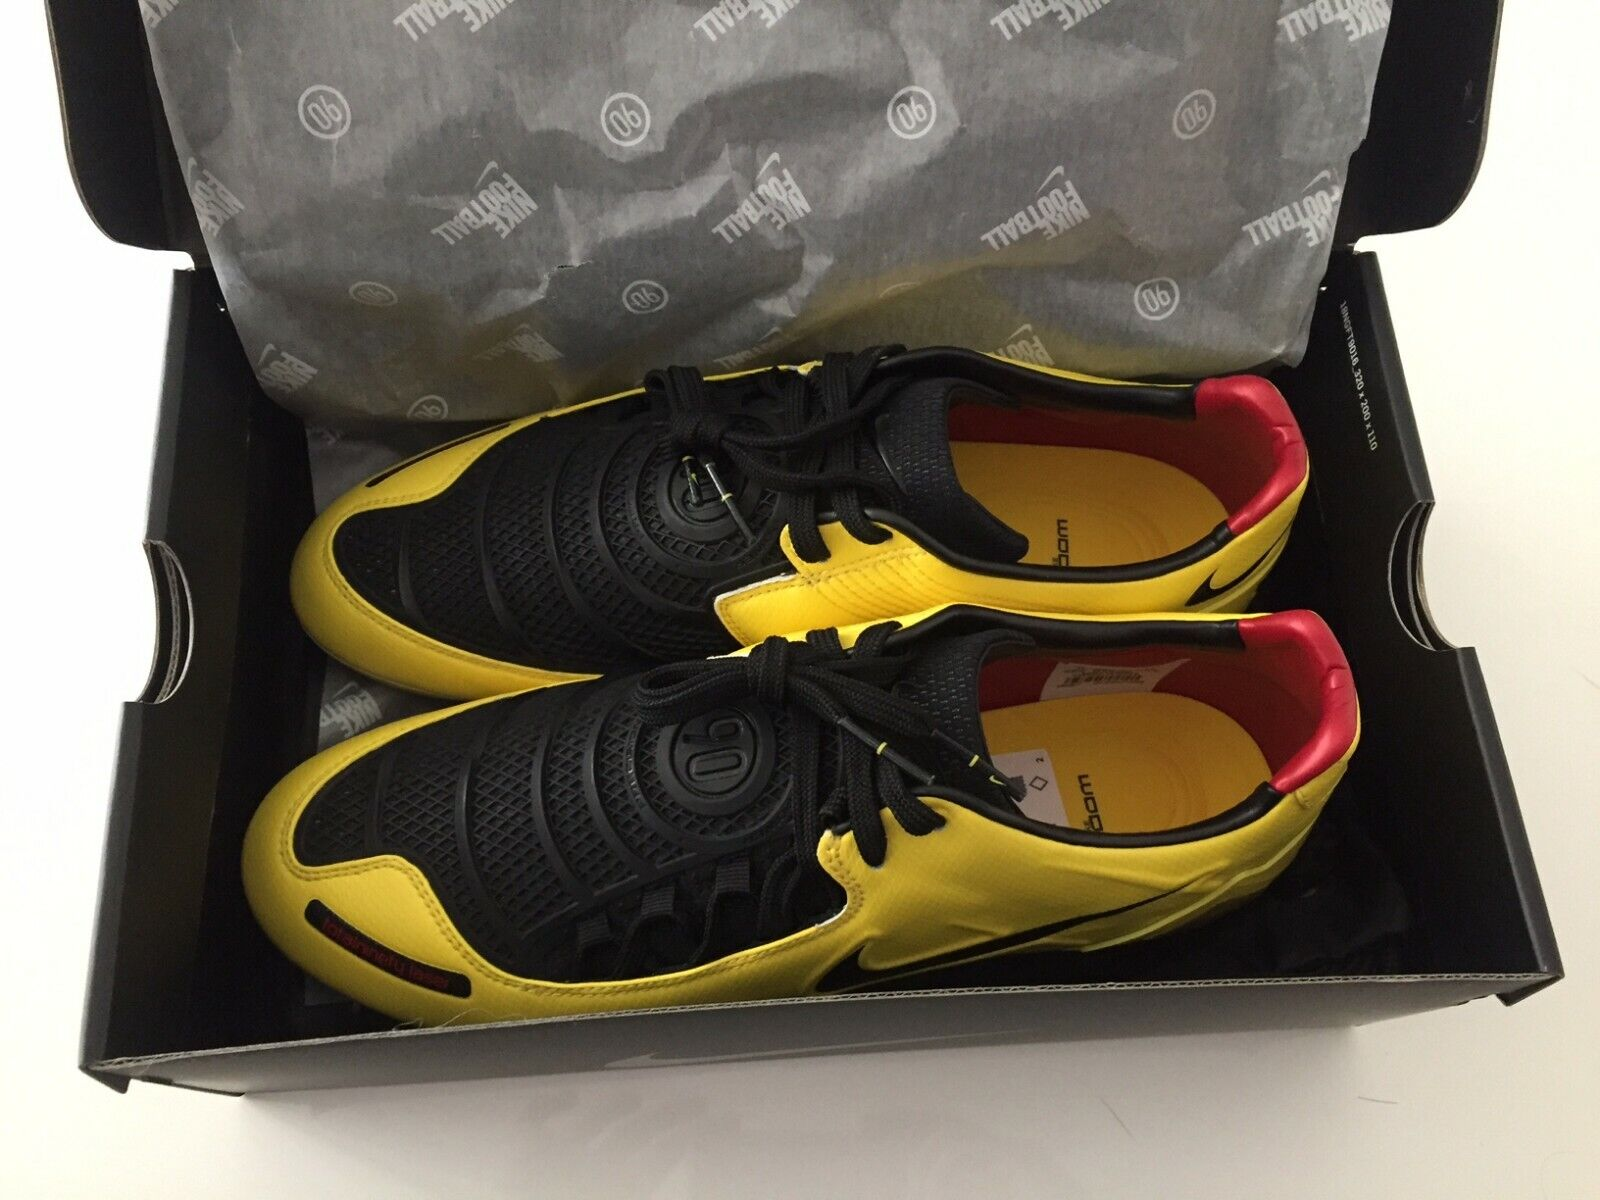 Nike T90 Laser I remake 2019 yellow total 90 11us total 90 rooney torres NEW